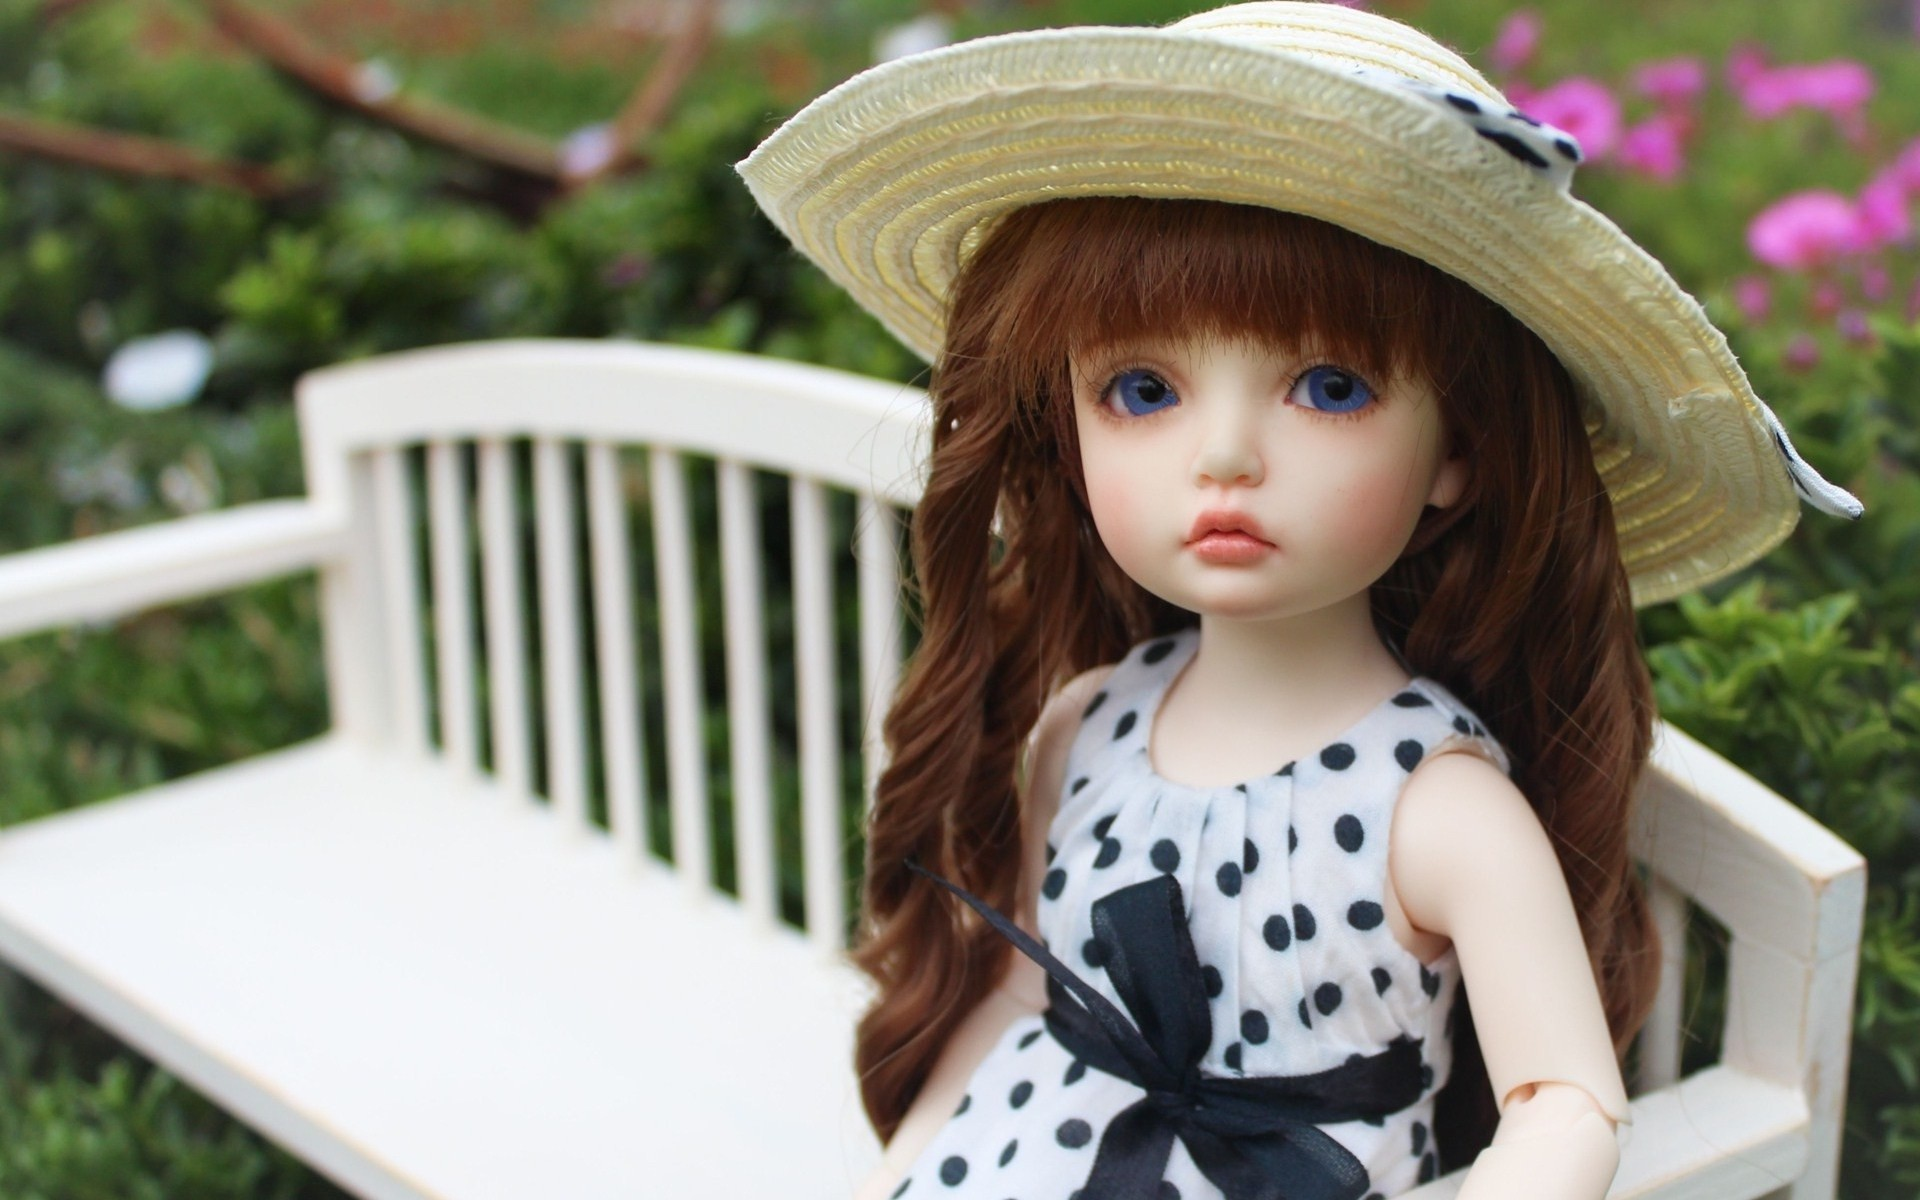 Doll at flowers shop wallpapers 720x1280 222504.